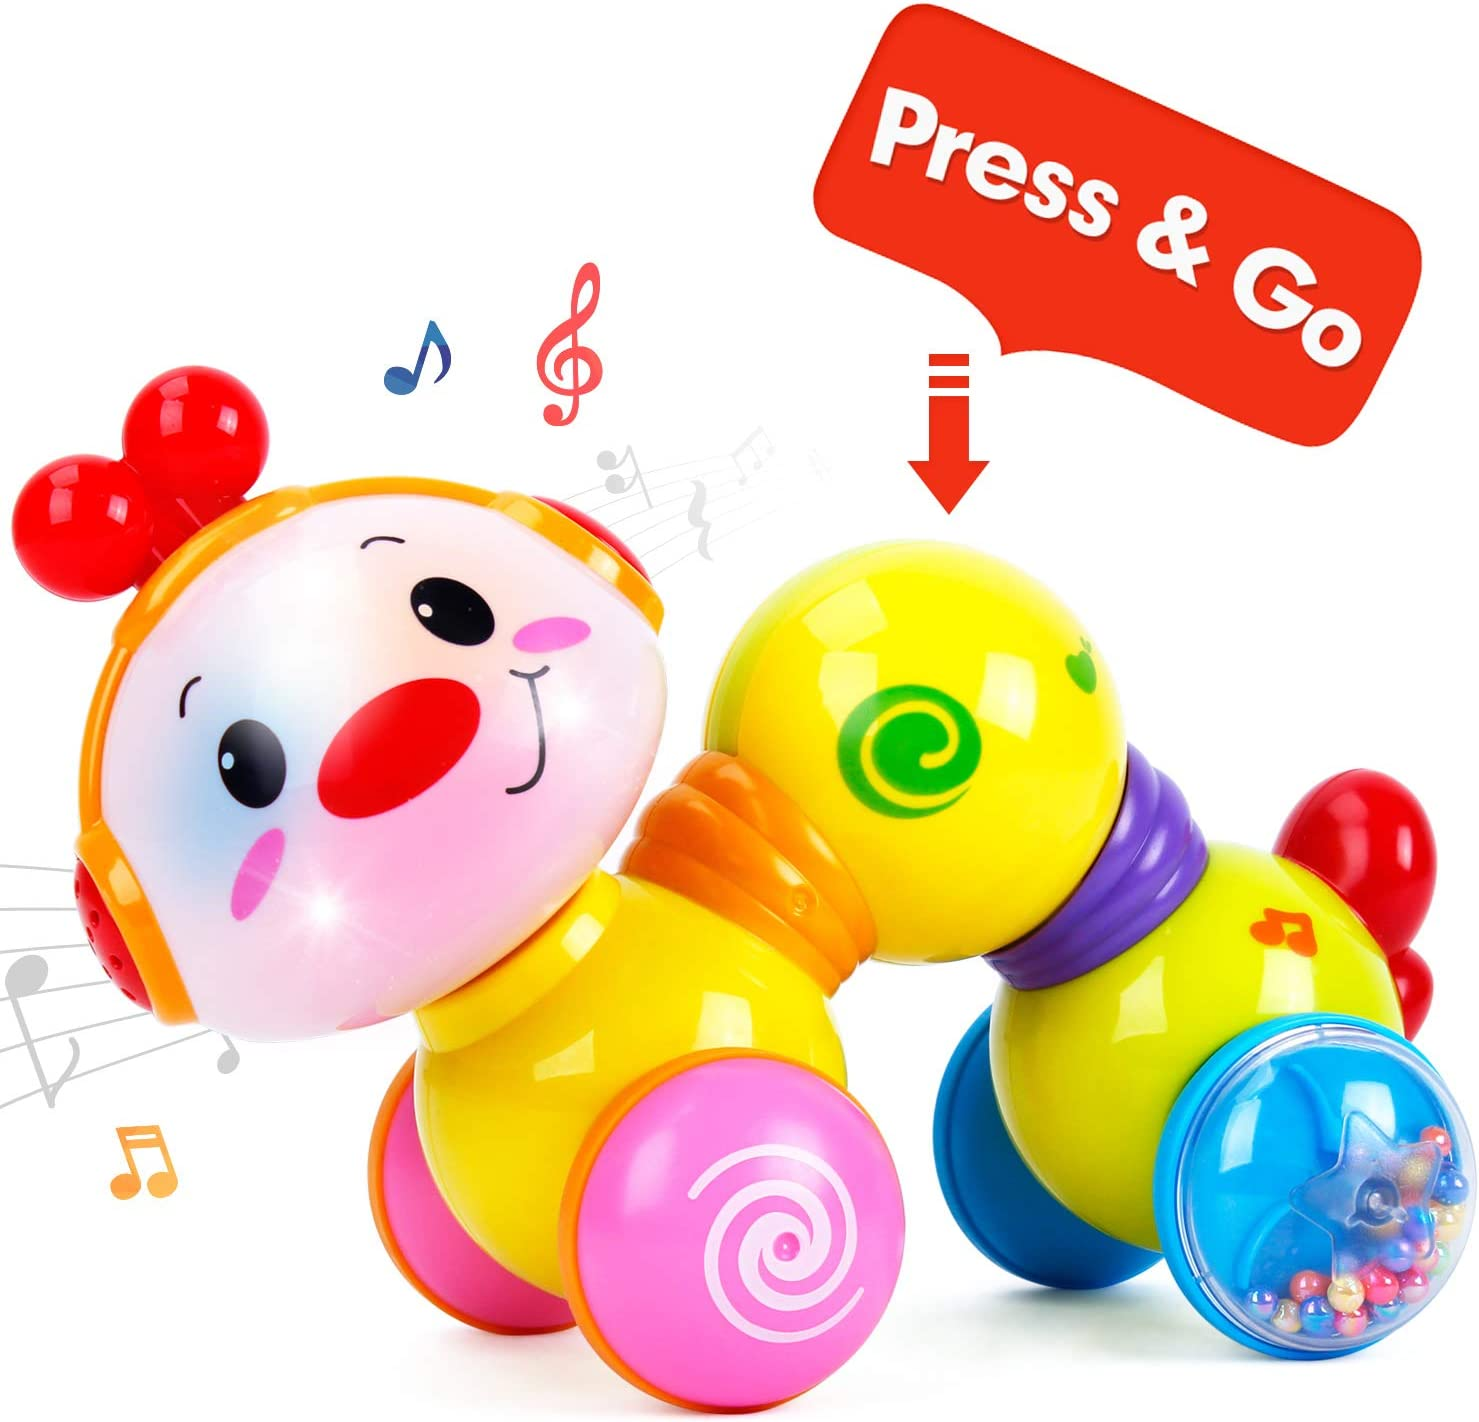 CubicFun Baby Toys Musical Press and Go Inchworm Toy with Light up Face Caterpillar Crawling Educational Toddler Toy for 6 9 12 18 24 Months Old, 1 2 3 Year Old Boys Girls